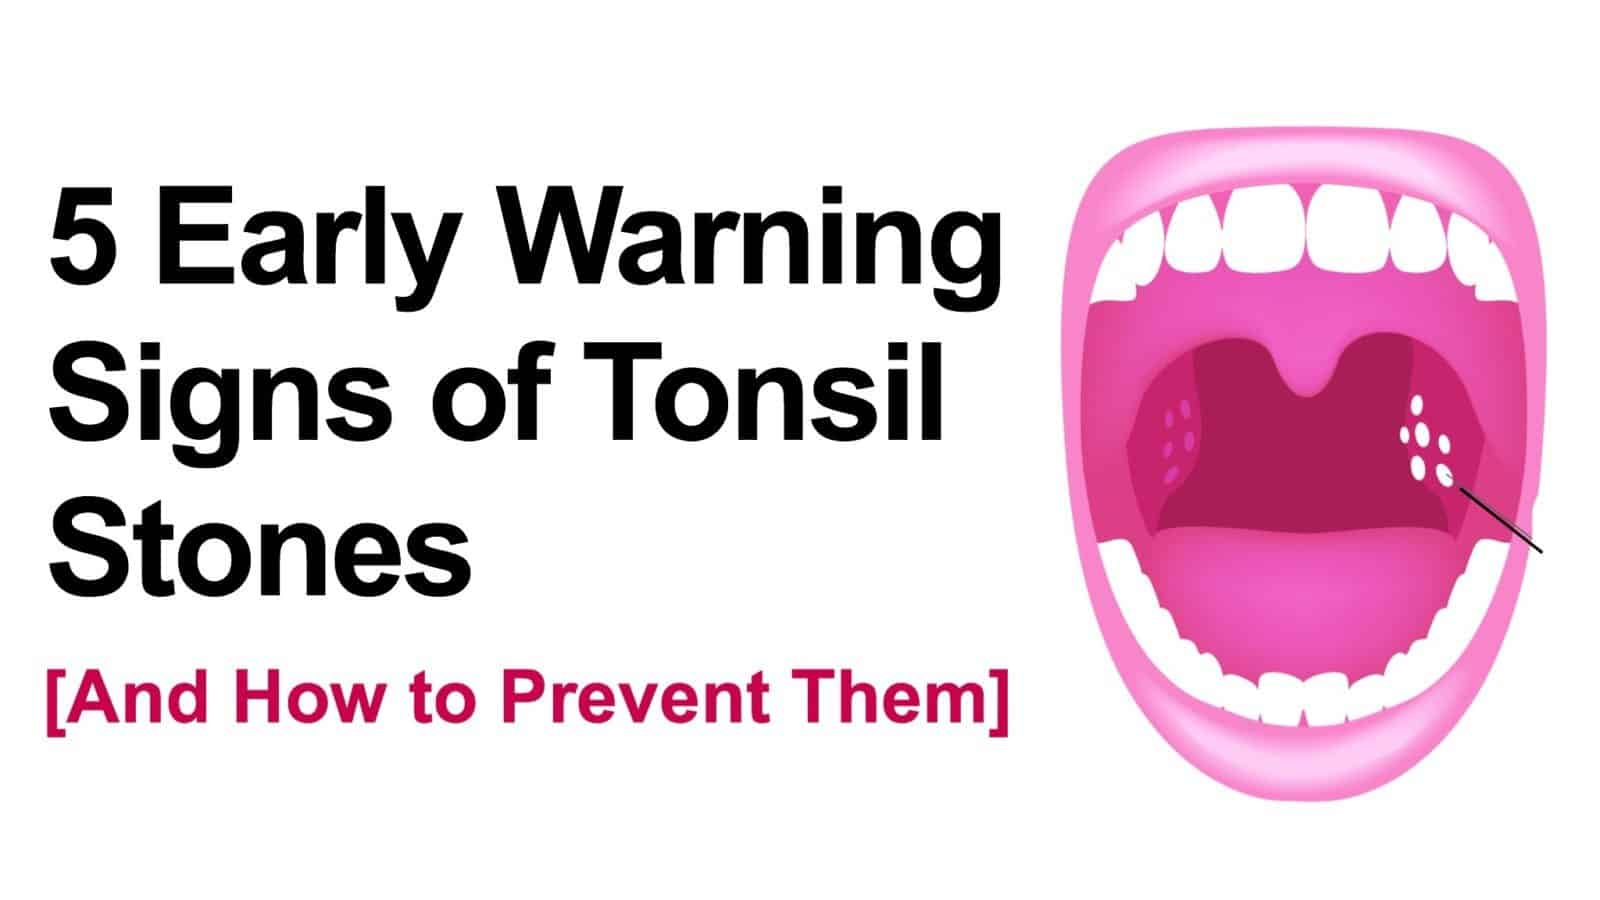 5 early warning signs of tonsil stones and how to prevent them